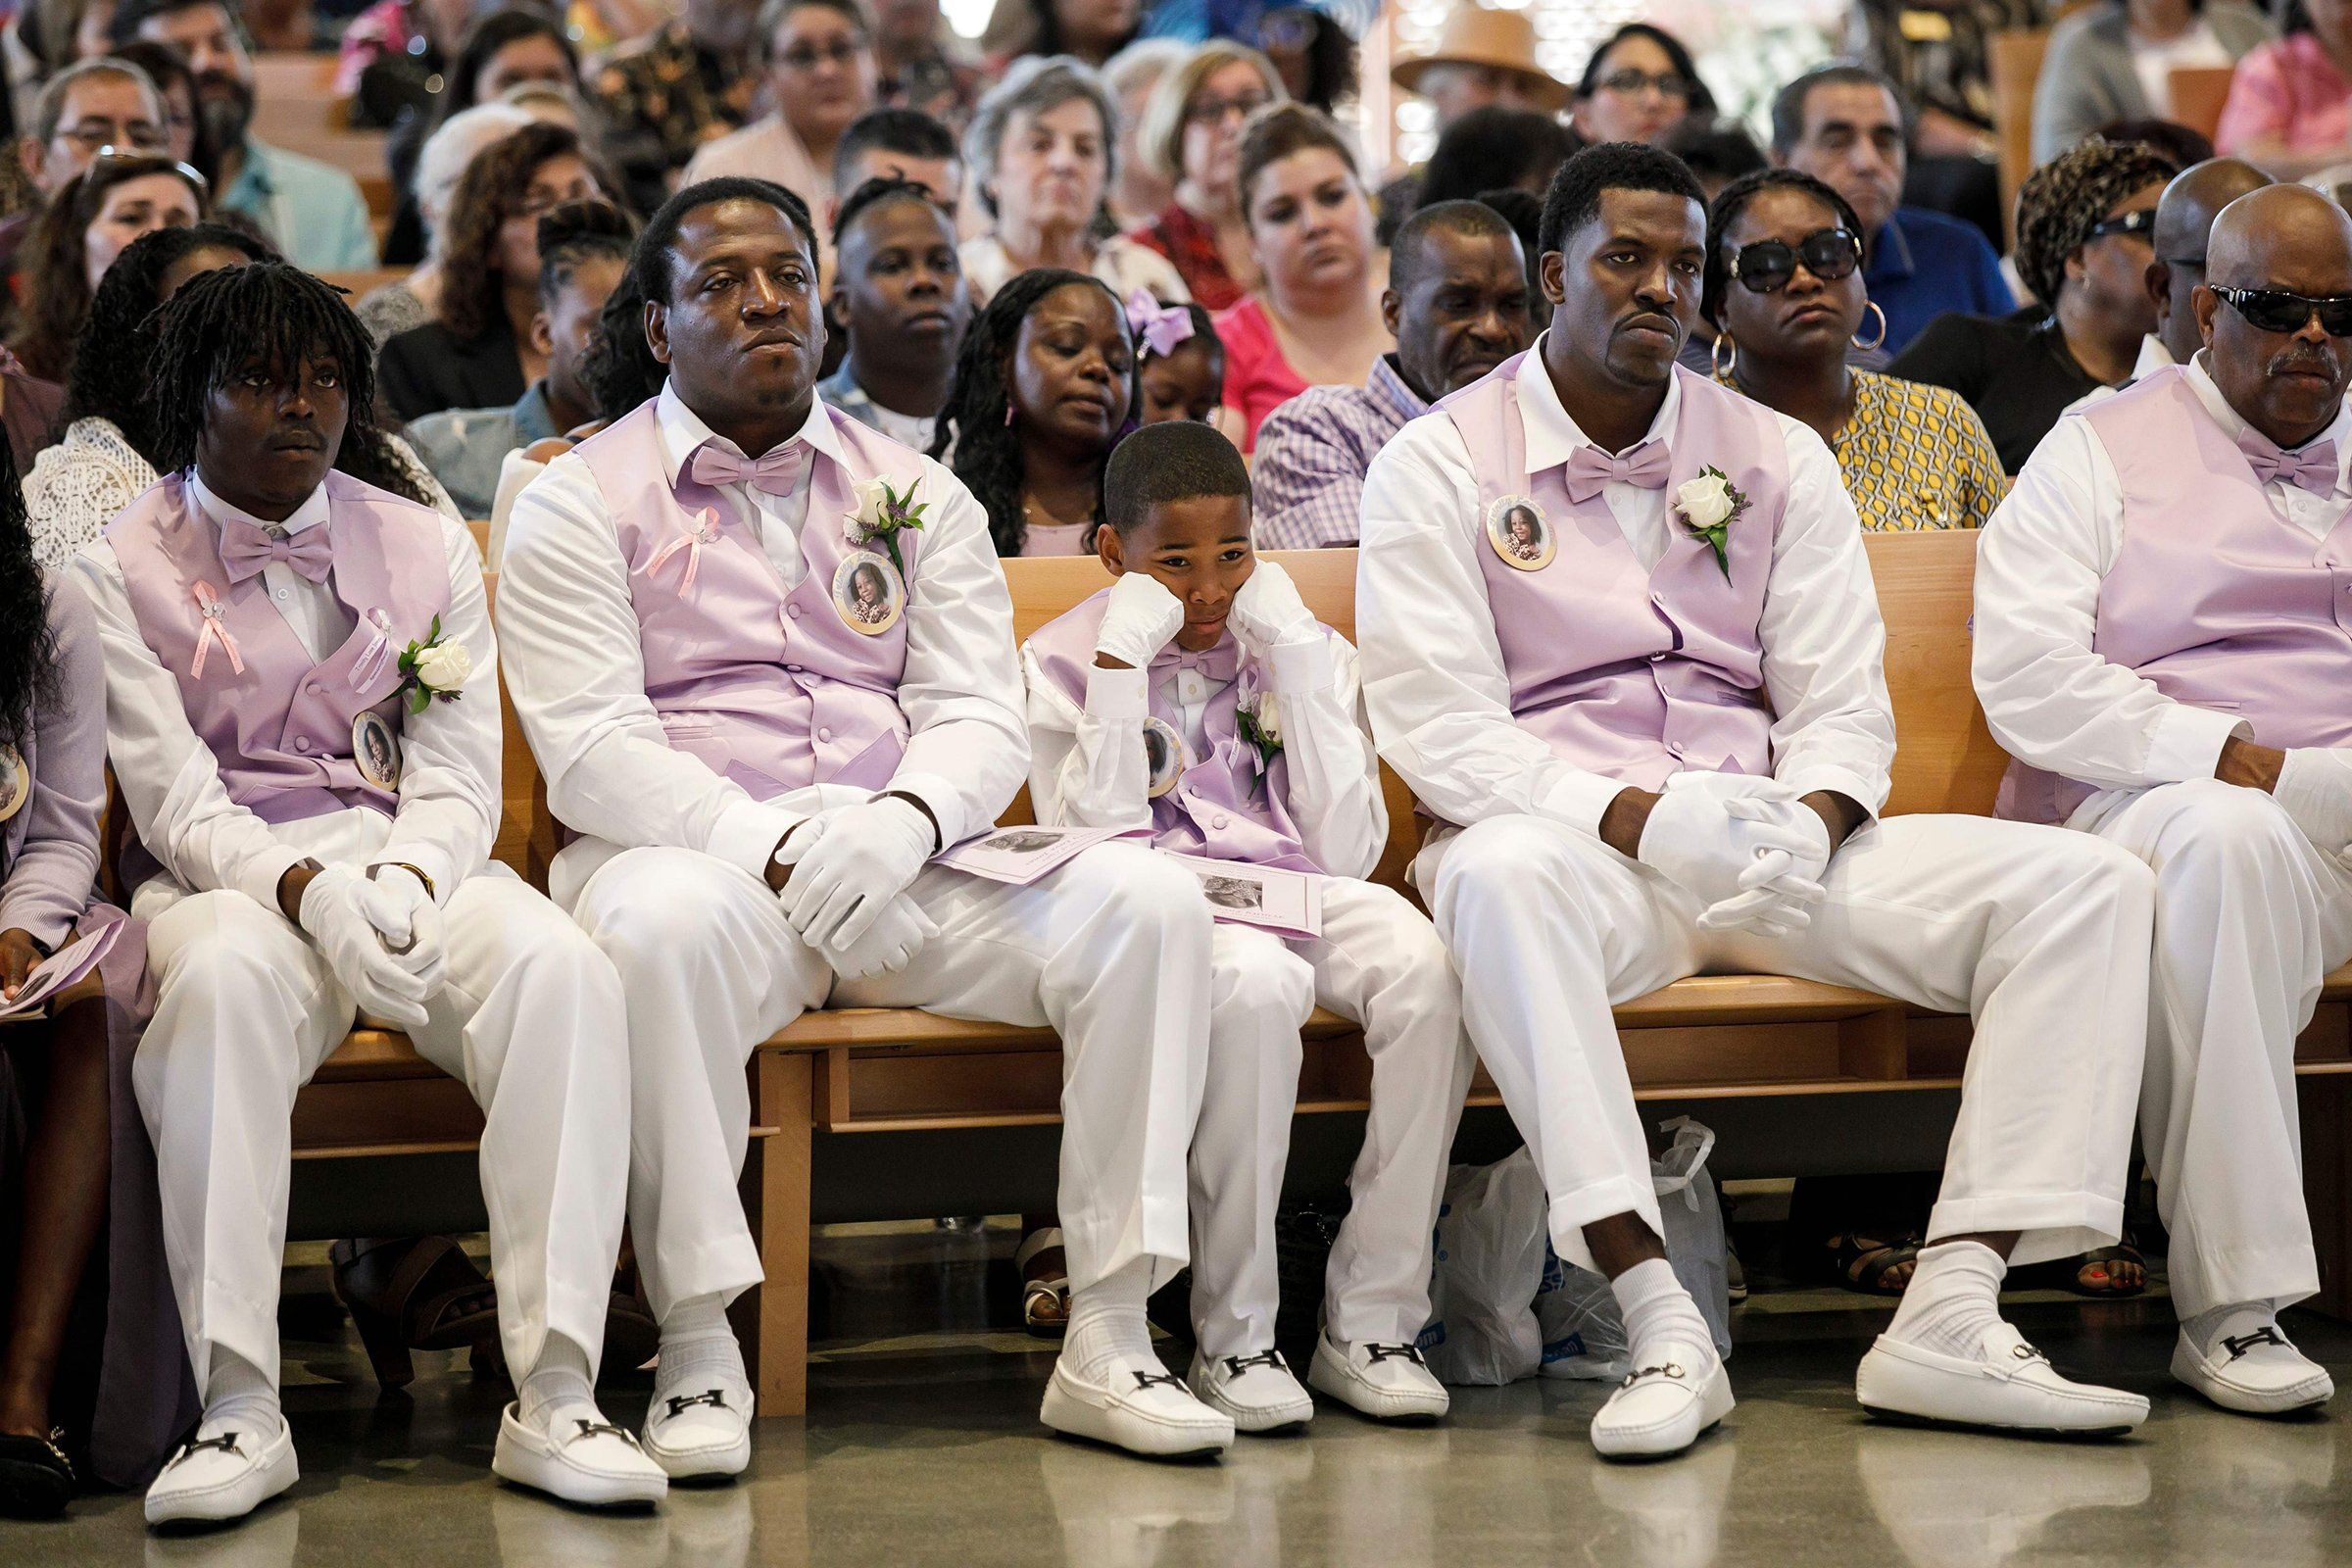 Pallbearers for the memorial service of Trinity Love Jones listen to a sermon on March 25. The 9-year-old's body was found in a duffel bag along a trail in Hacienda Heights, Calif.